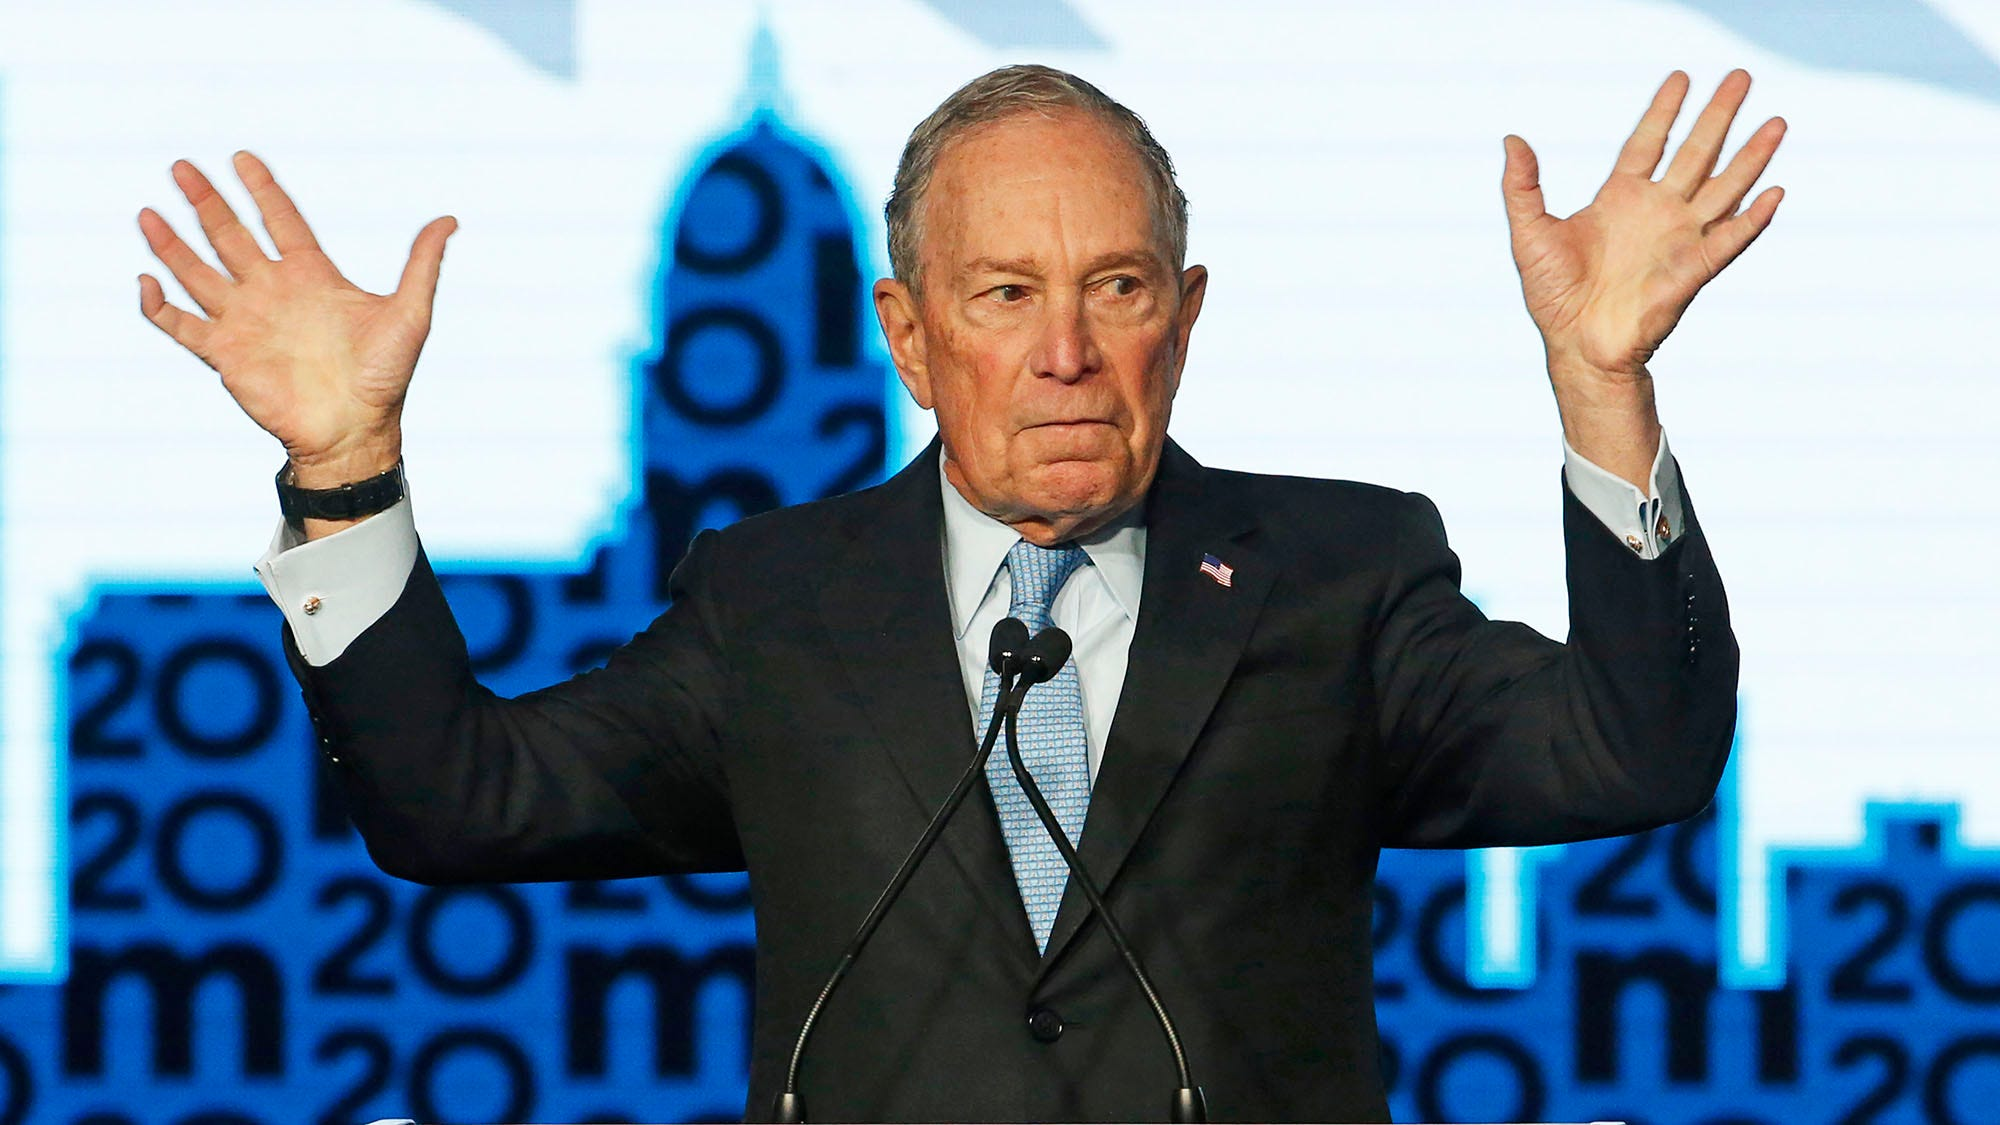 Bloomberg plotting to block Sanders nomination with brokered...